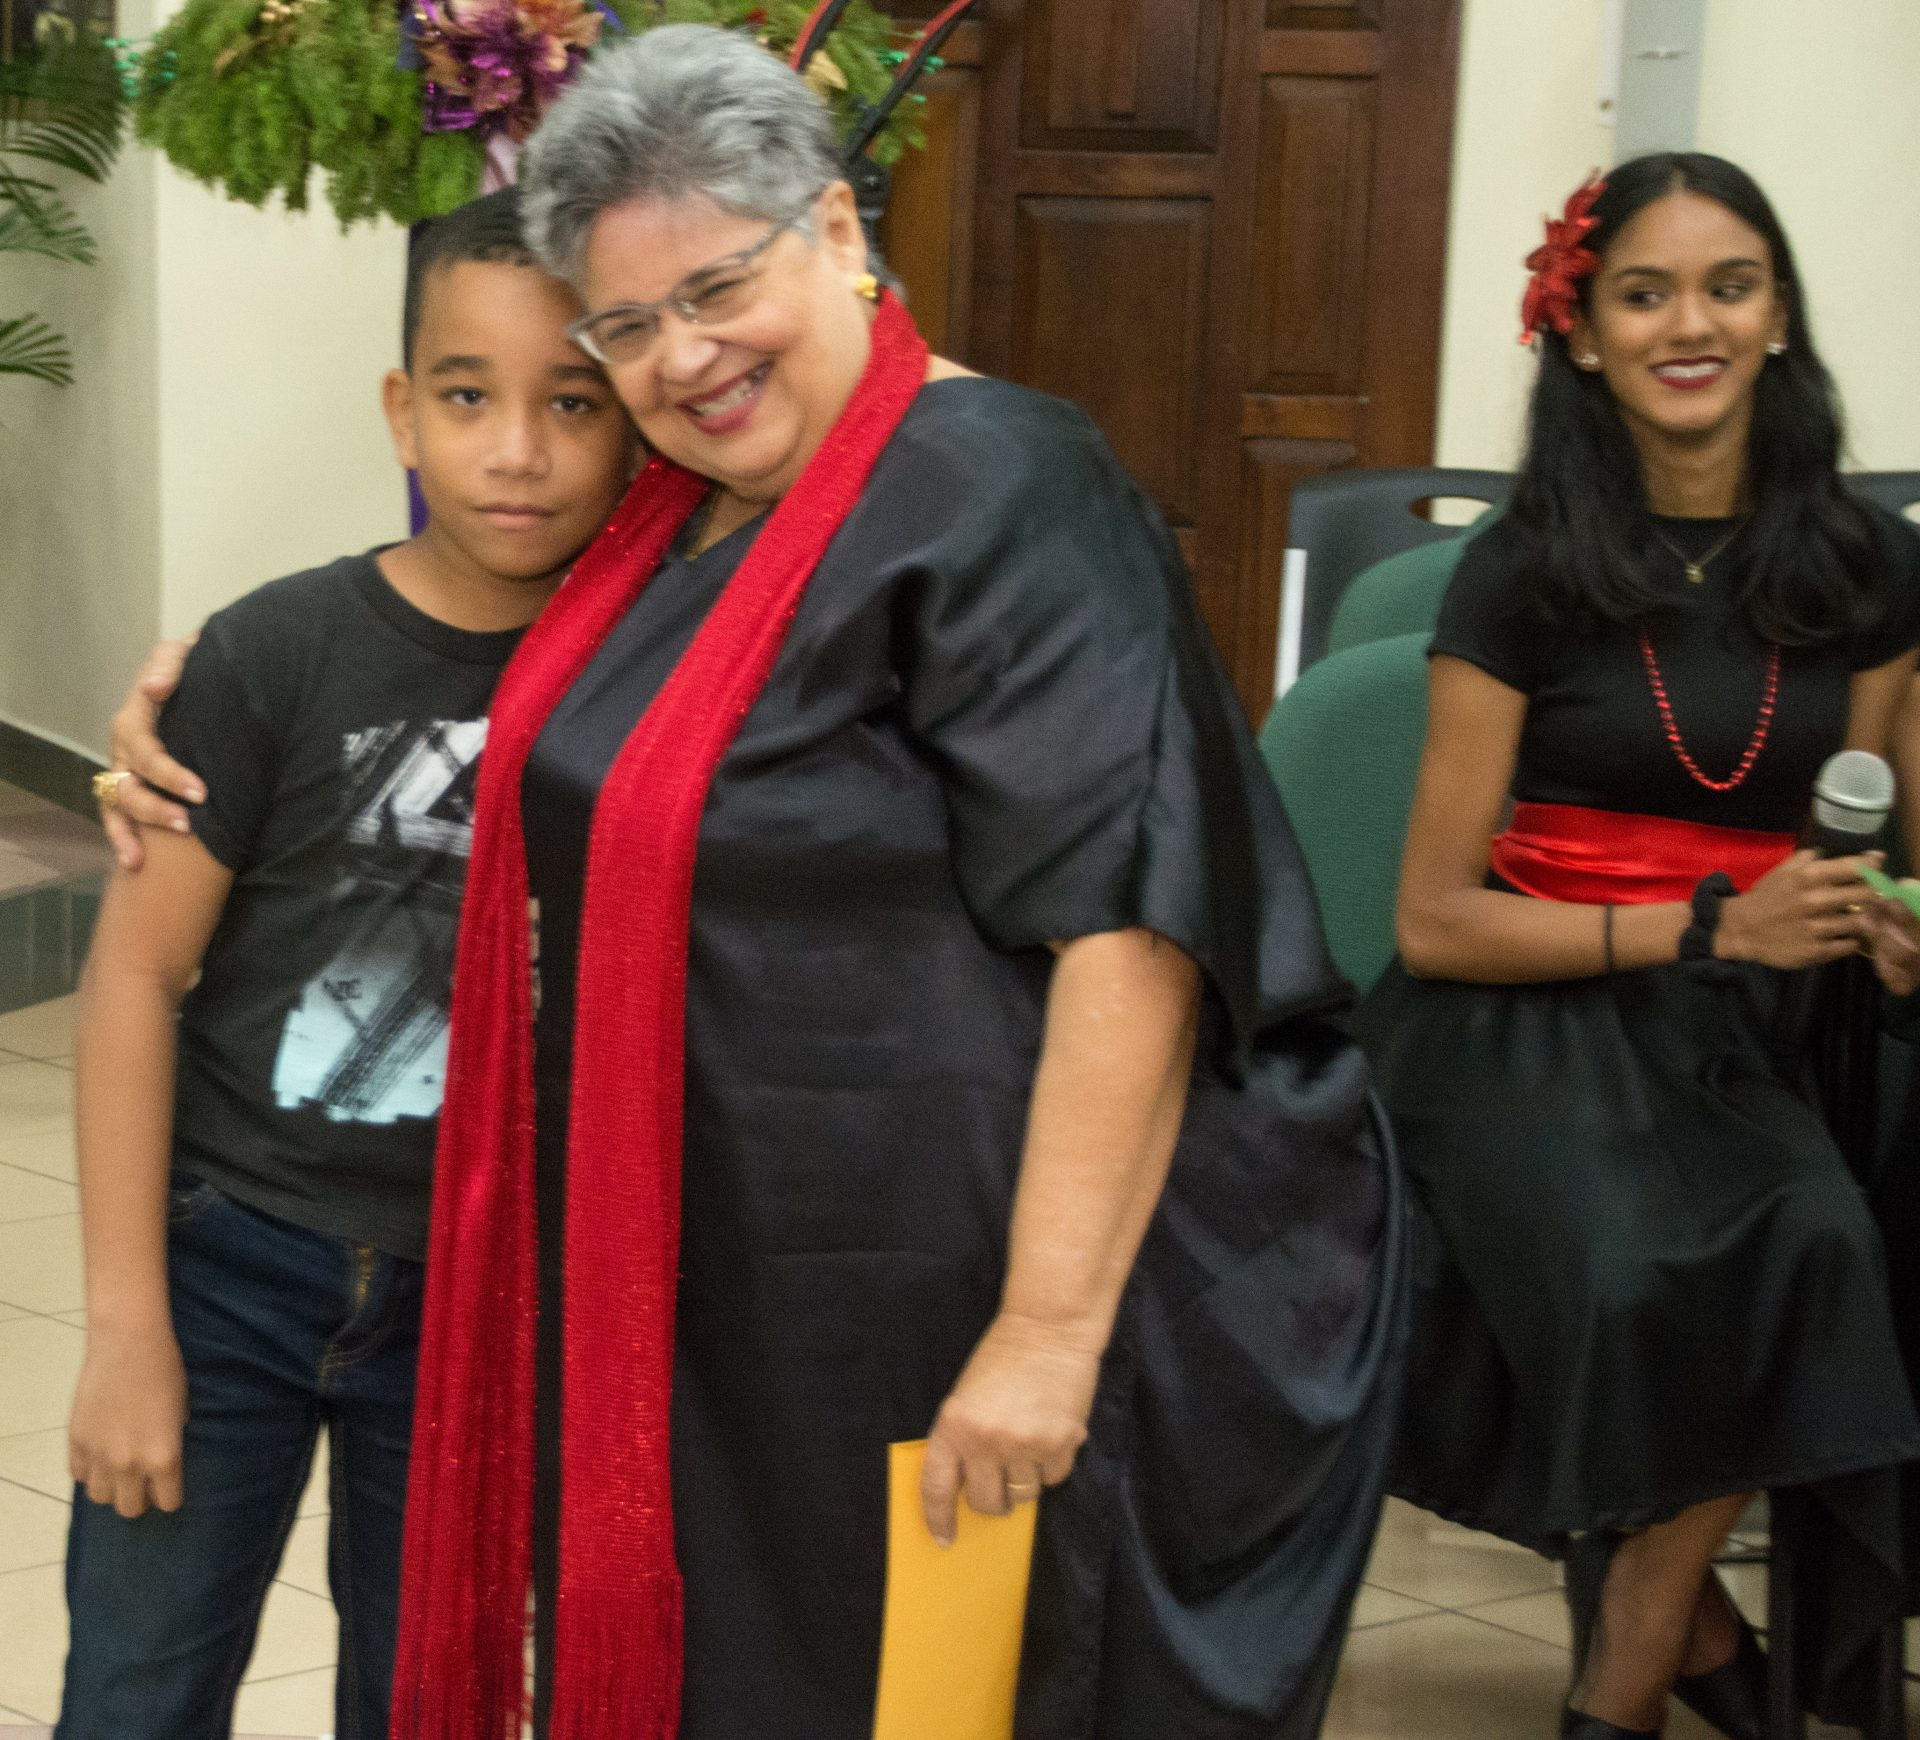 A Venezuelan child thanks Musical Director Soroptimist Marilyn Lalla.